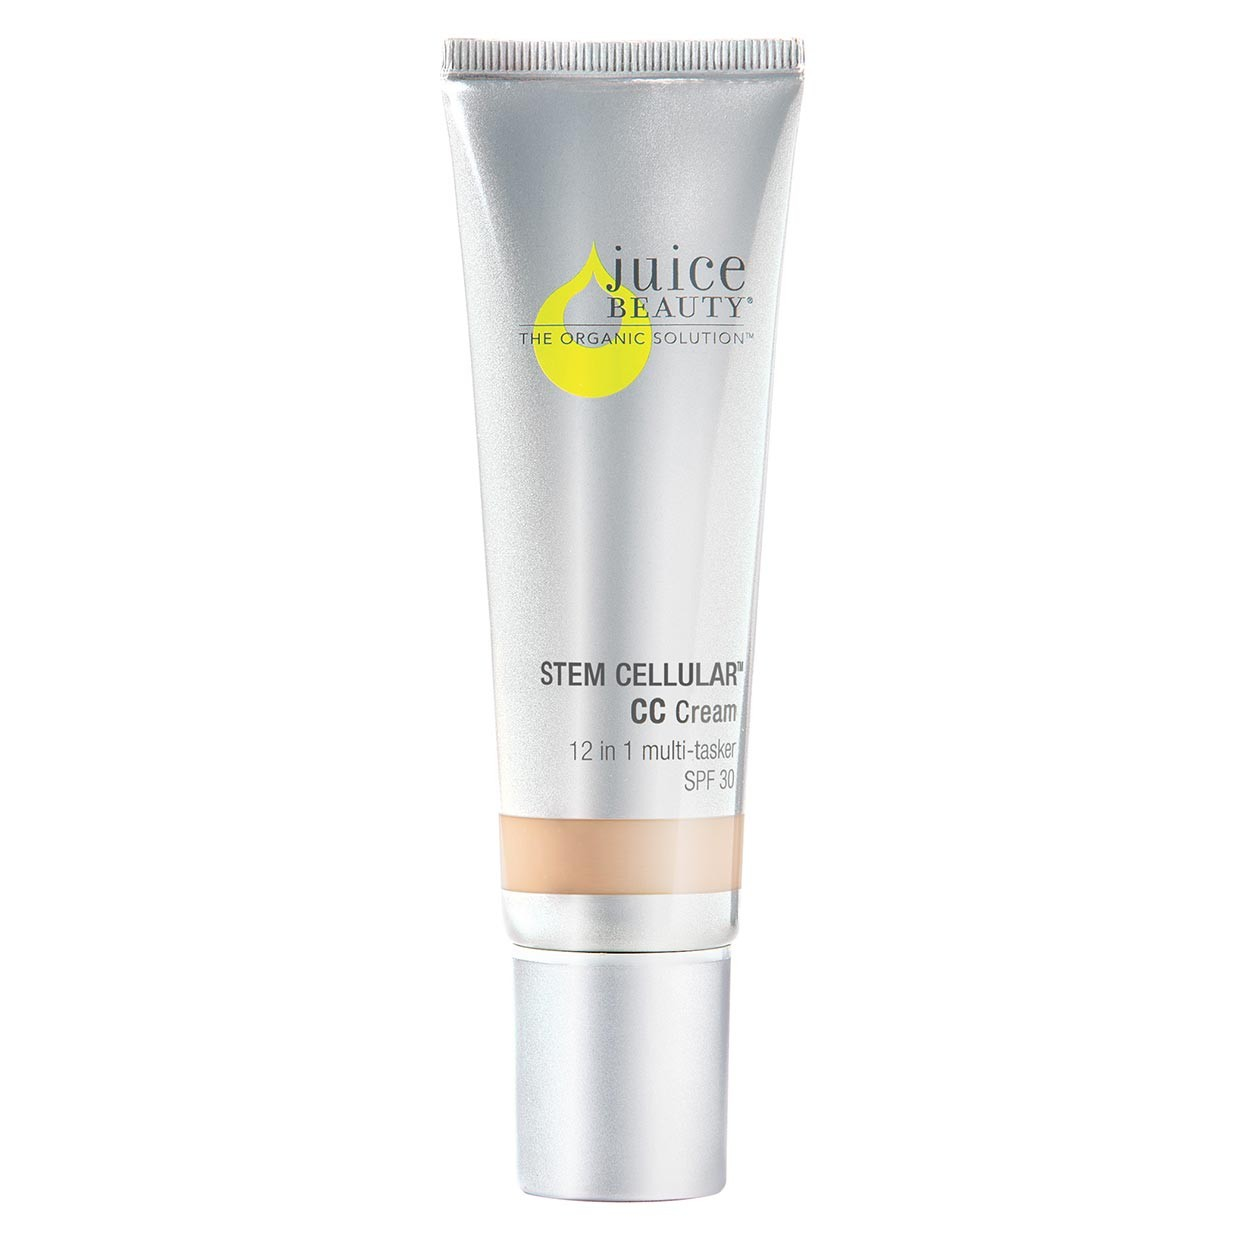 Juice Beauty® Stem Cellular CC Cream